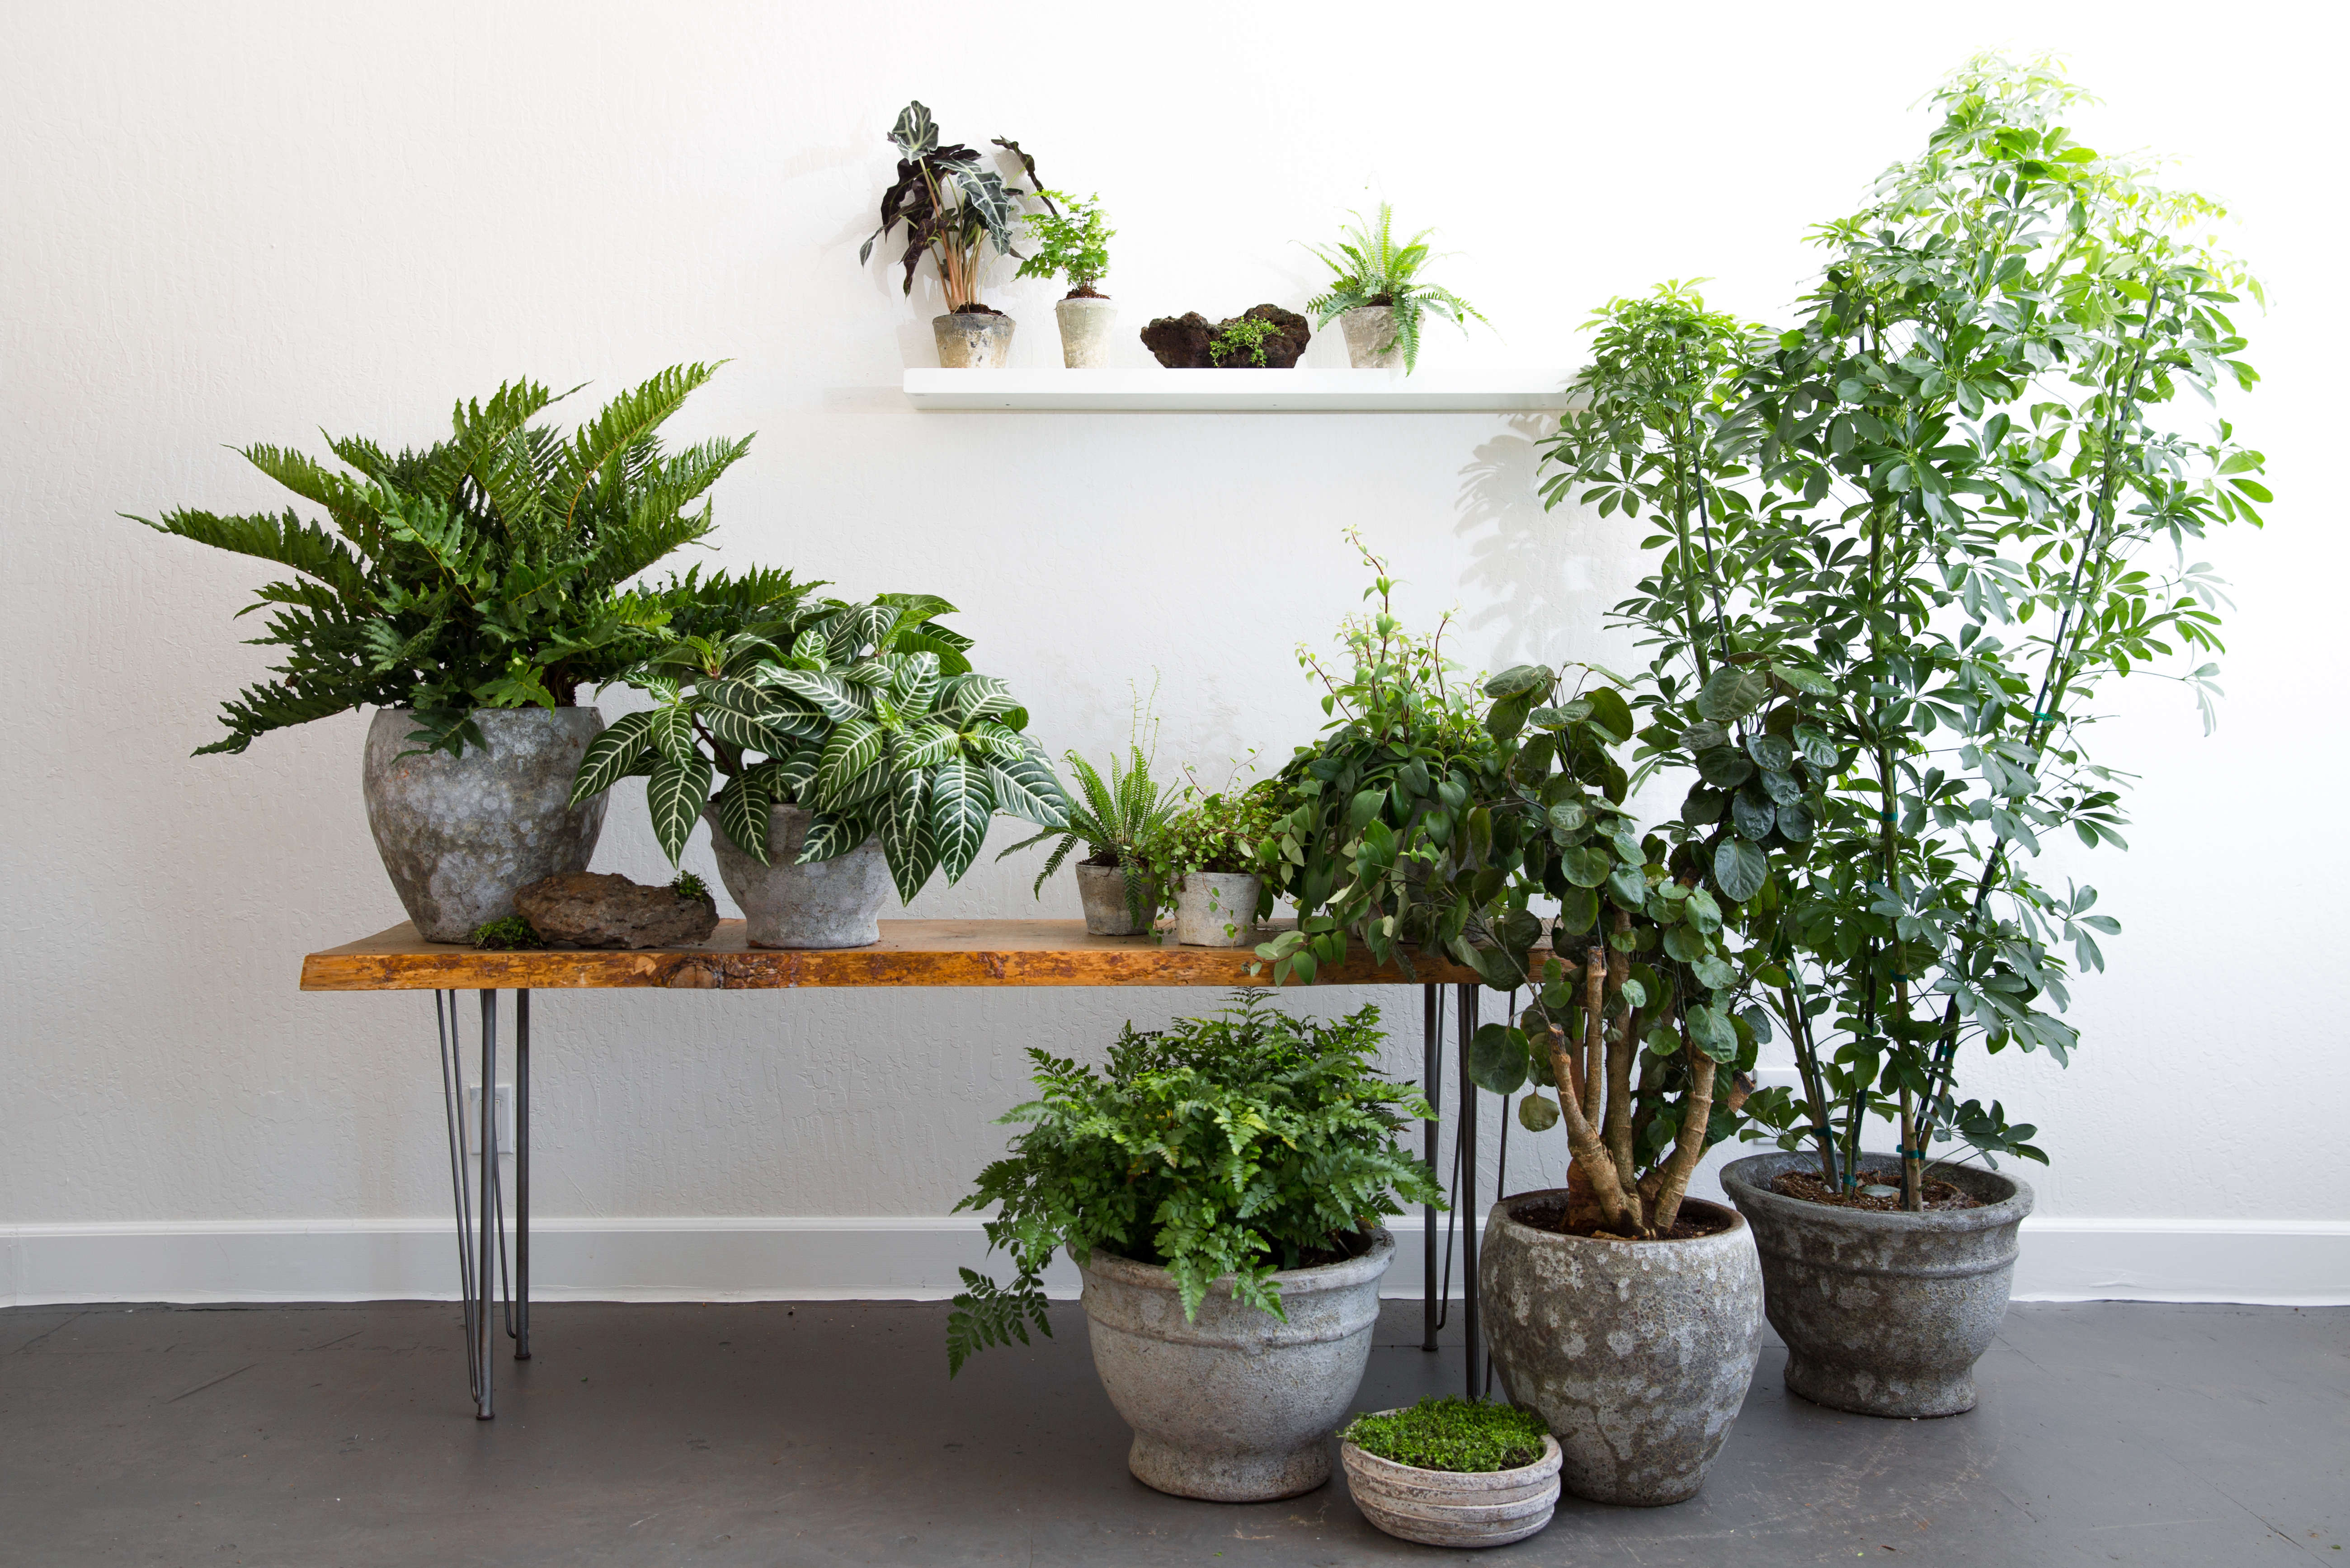 Rent-a-Houseplant: The Plant Library Delivers - Gardenista